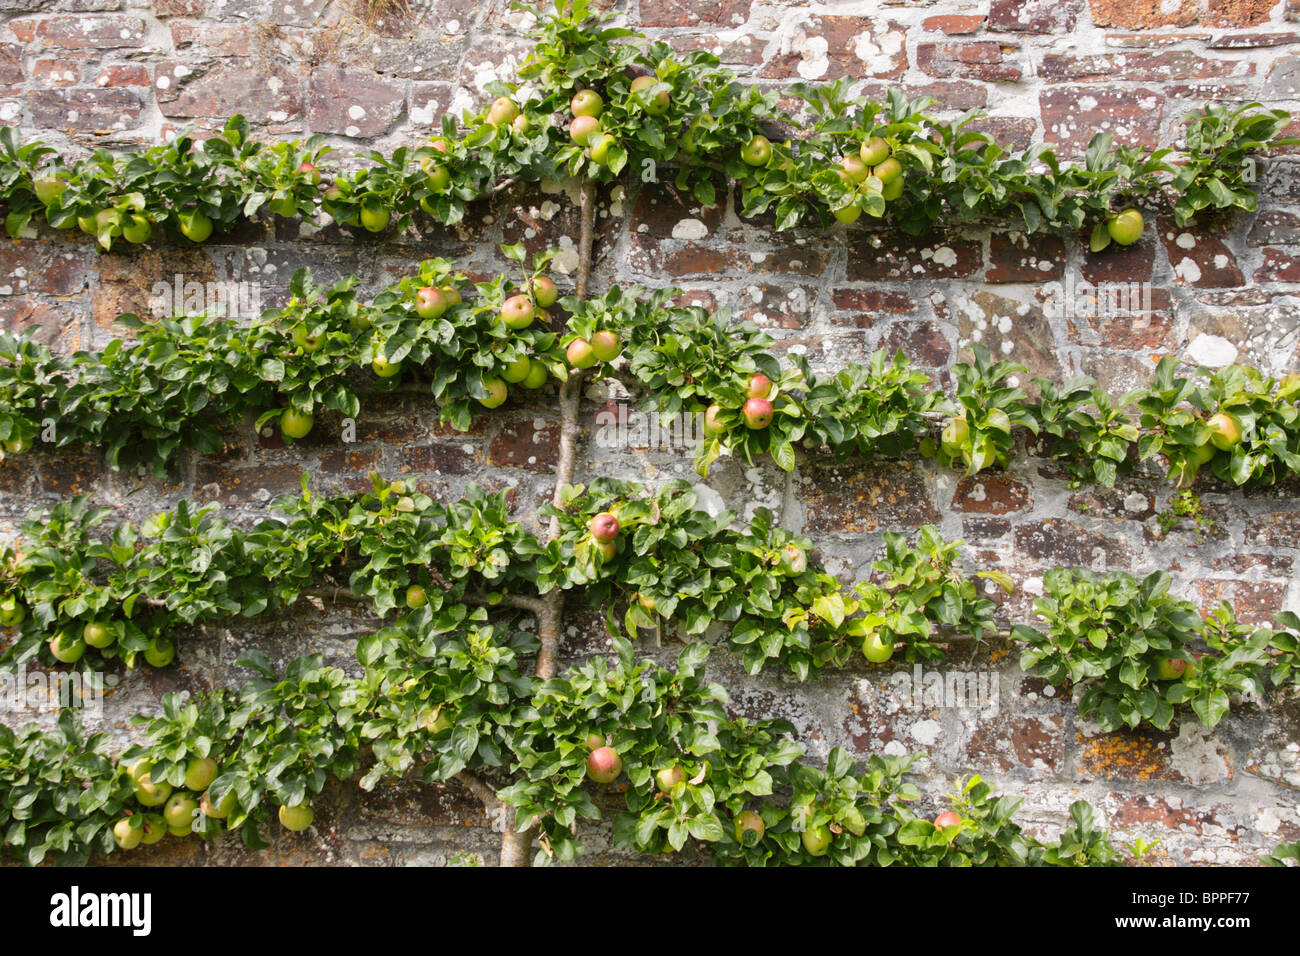 Apple Tree Trained To Grow As An Espalier Tree Against A Garden Wall